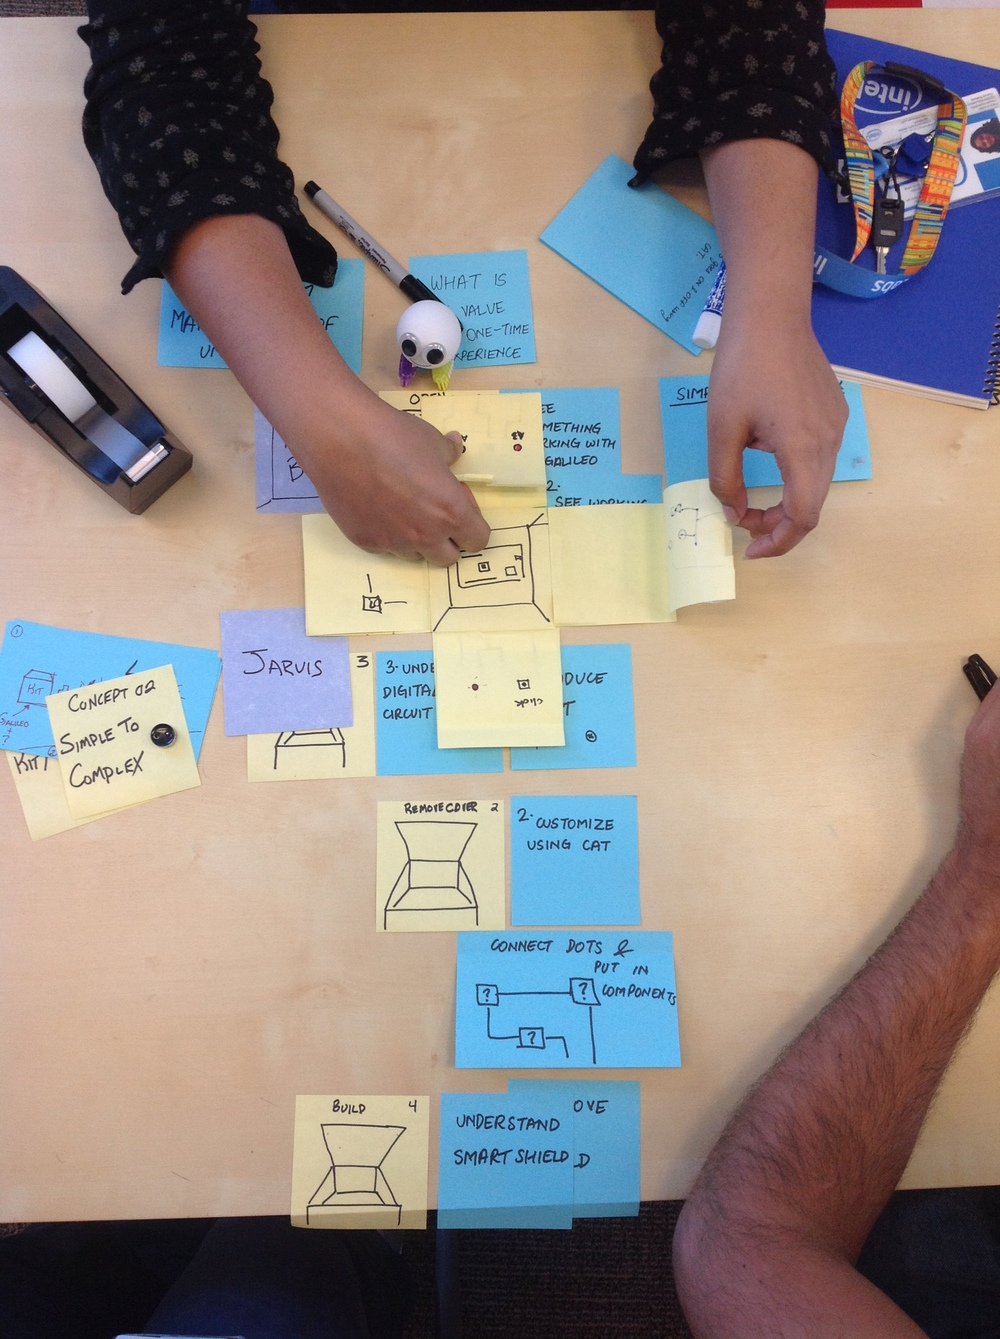 Prototype 0: Post-It Ideation